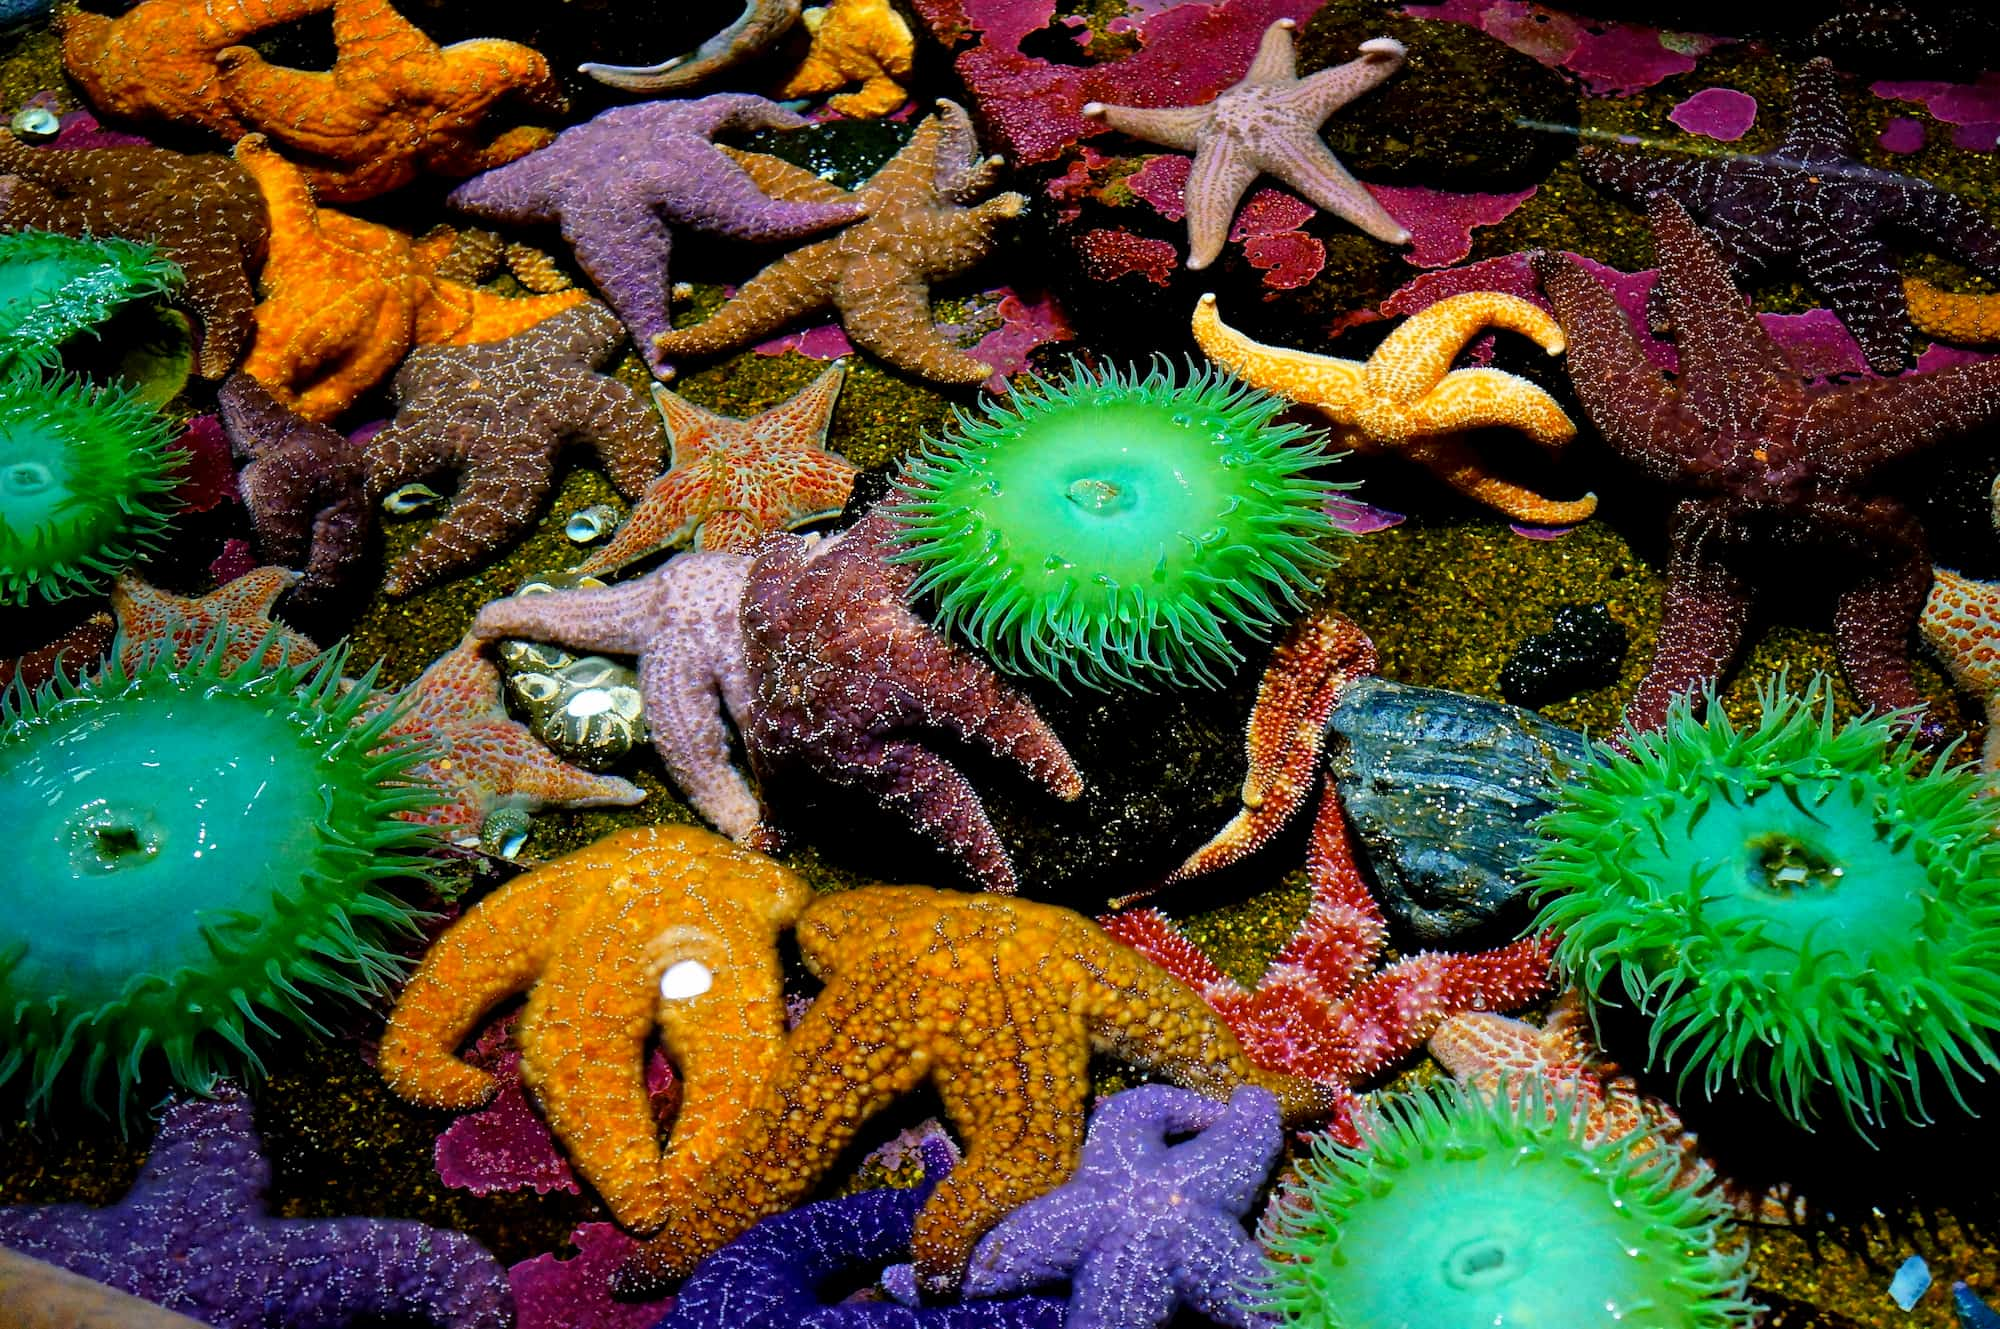 close-up of many colorful tidepool creatures